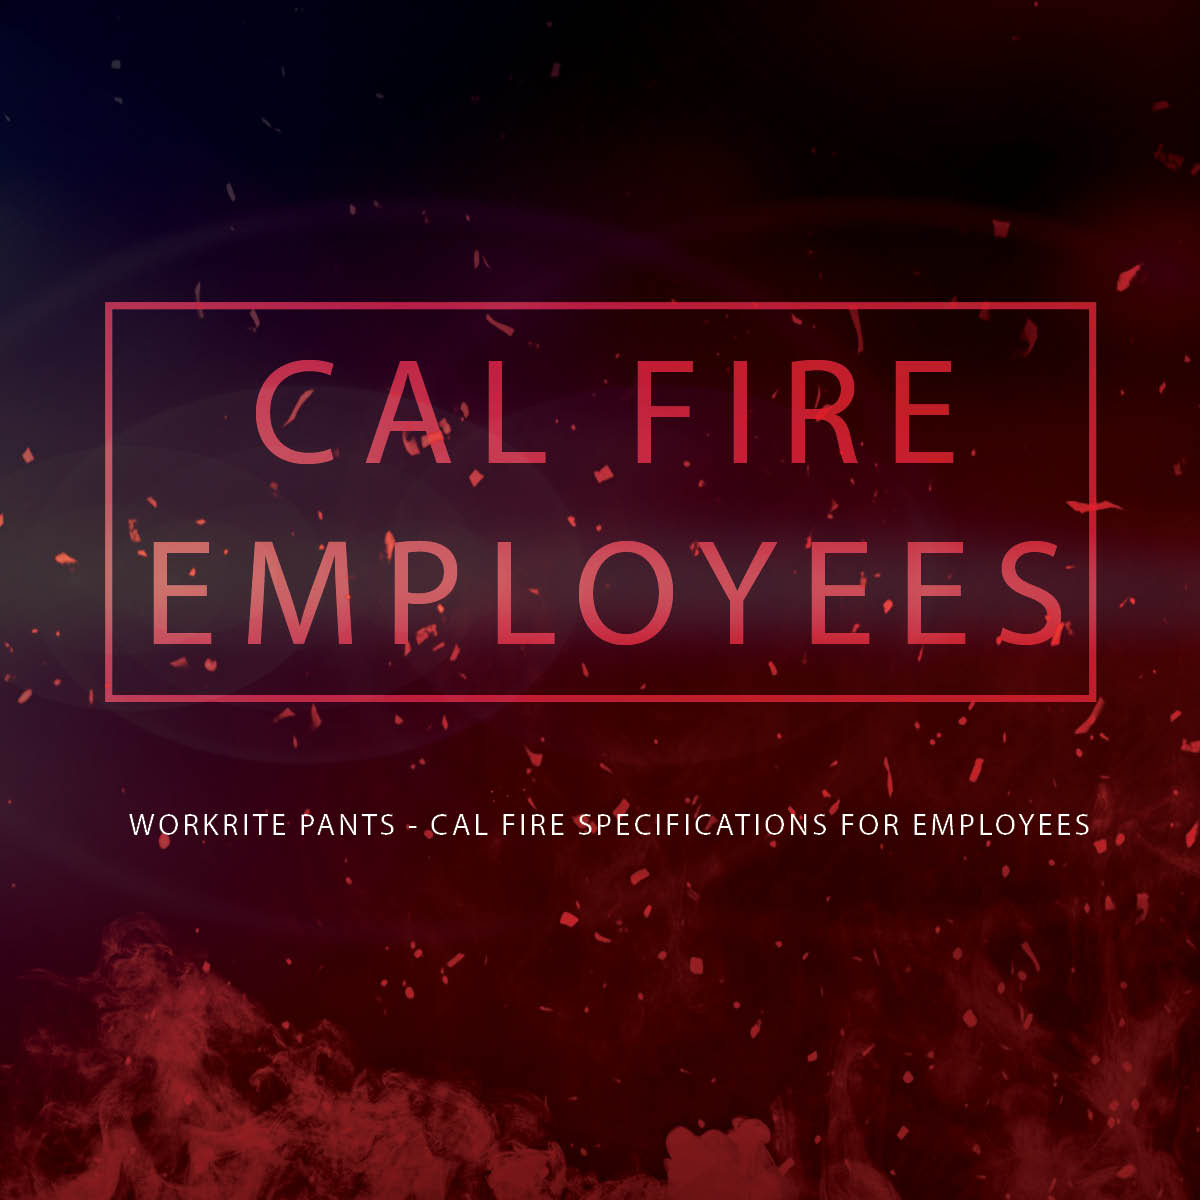 Cal Fire Specifications for Employees